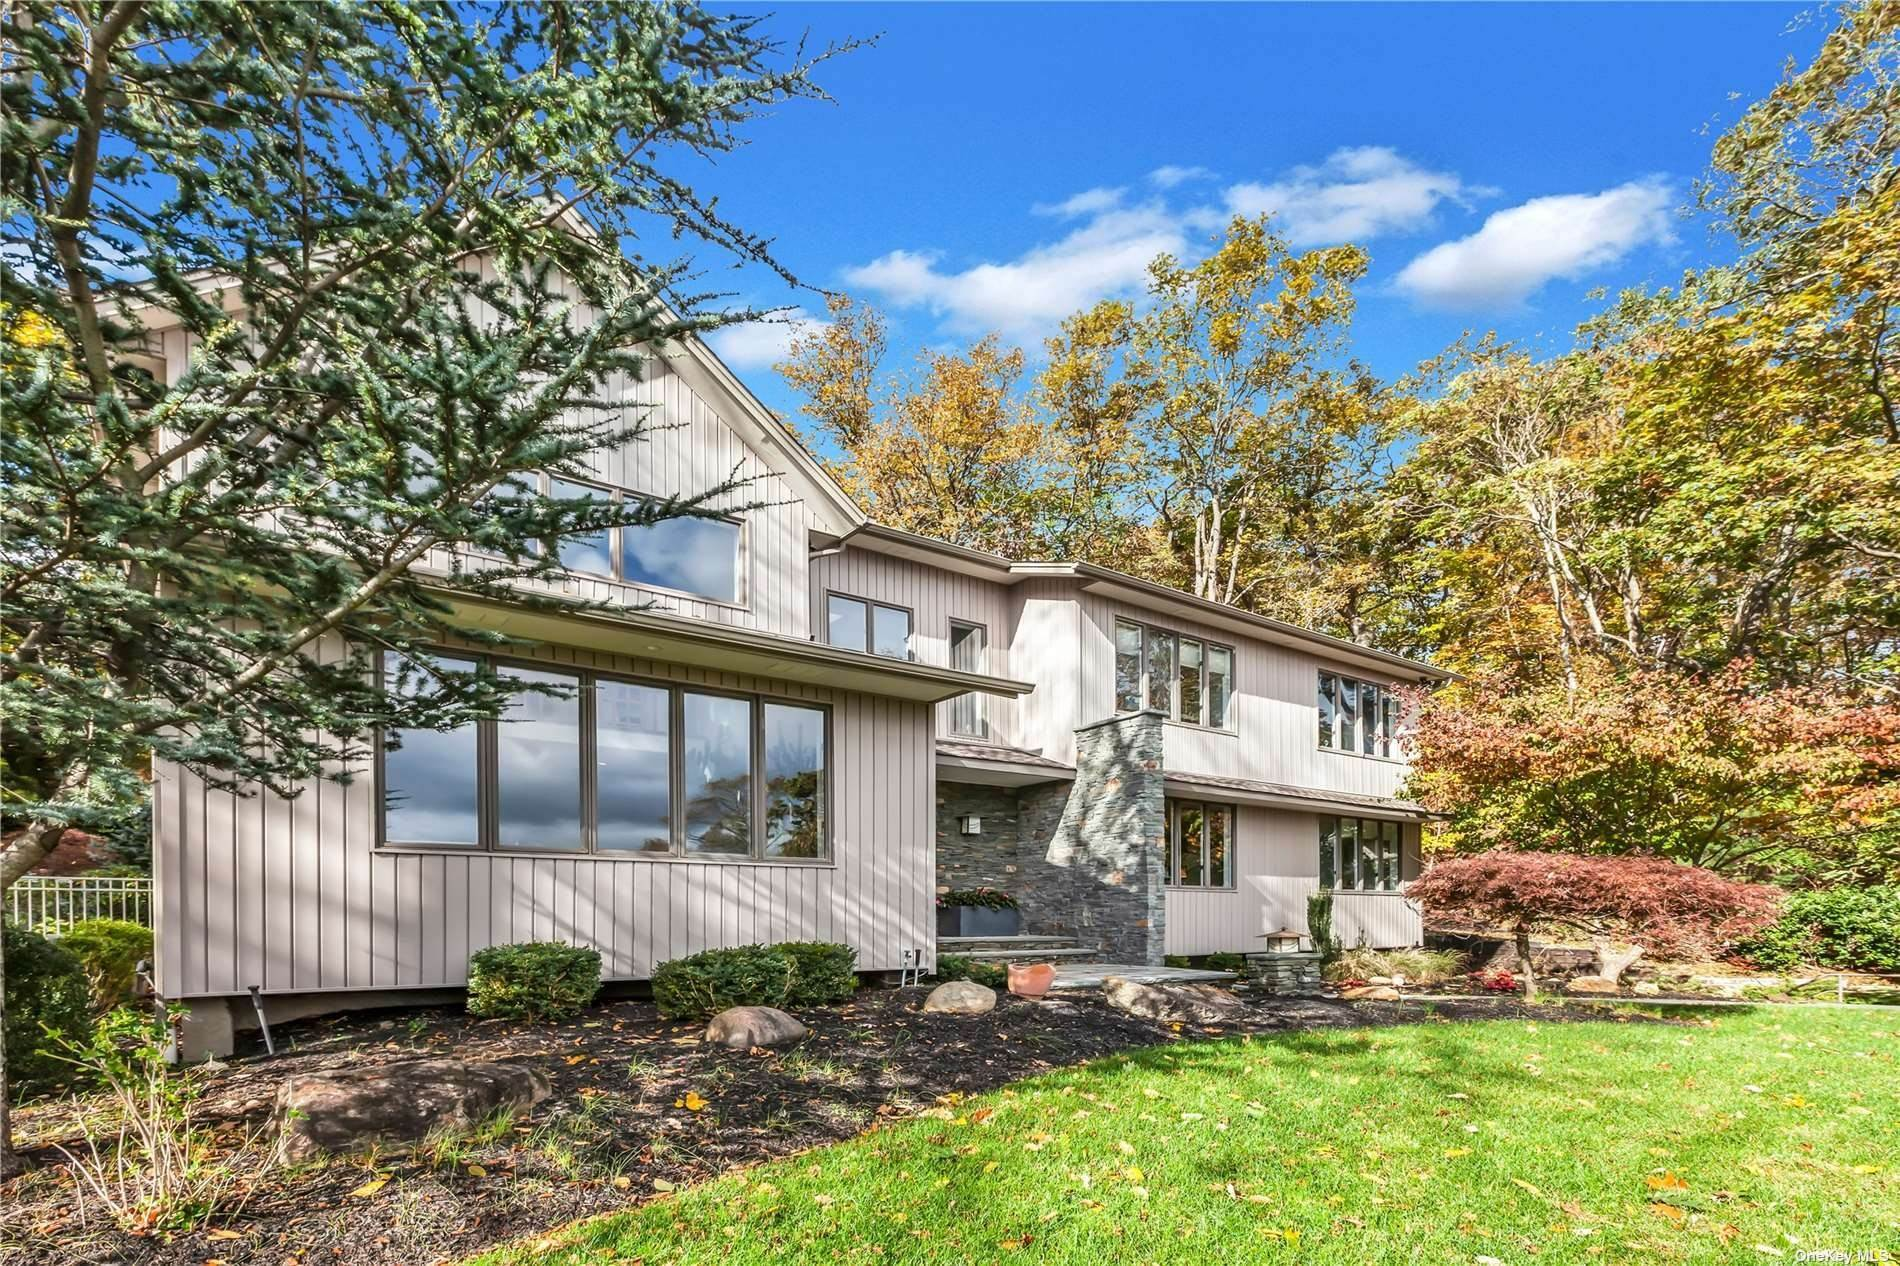 Residential for Sale at 17 Ronald Court Port Jefferson, New York 11777 United States